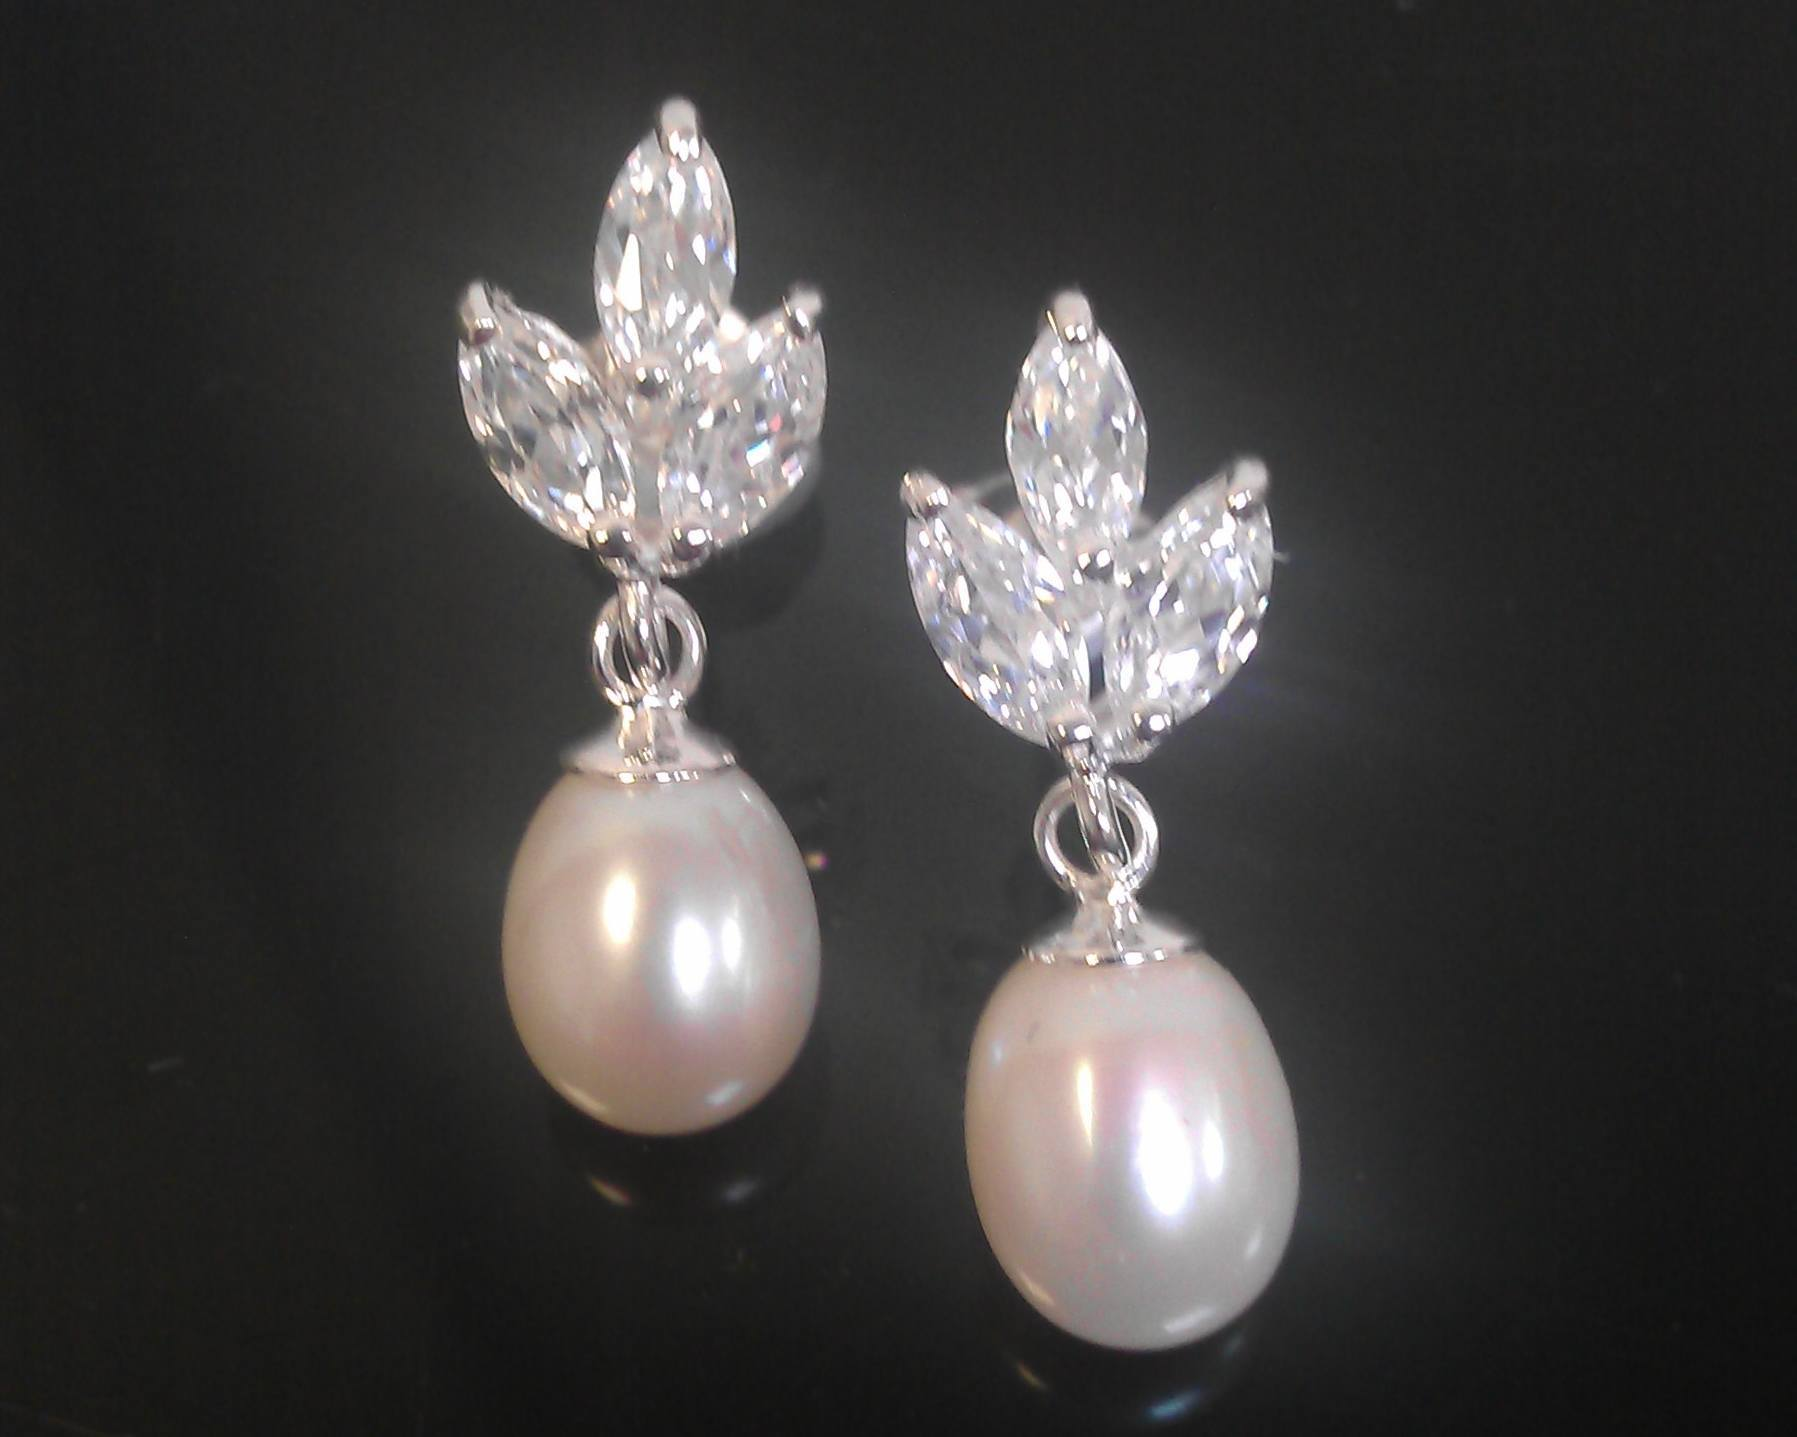 ... Wedding Earrings - Floral Crystal With Freshwater Pearl   Sterling  Silver Earrings 83a4bf4aa04e